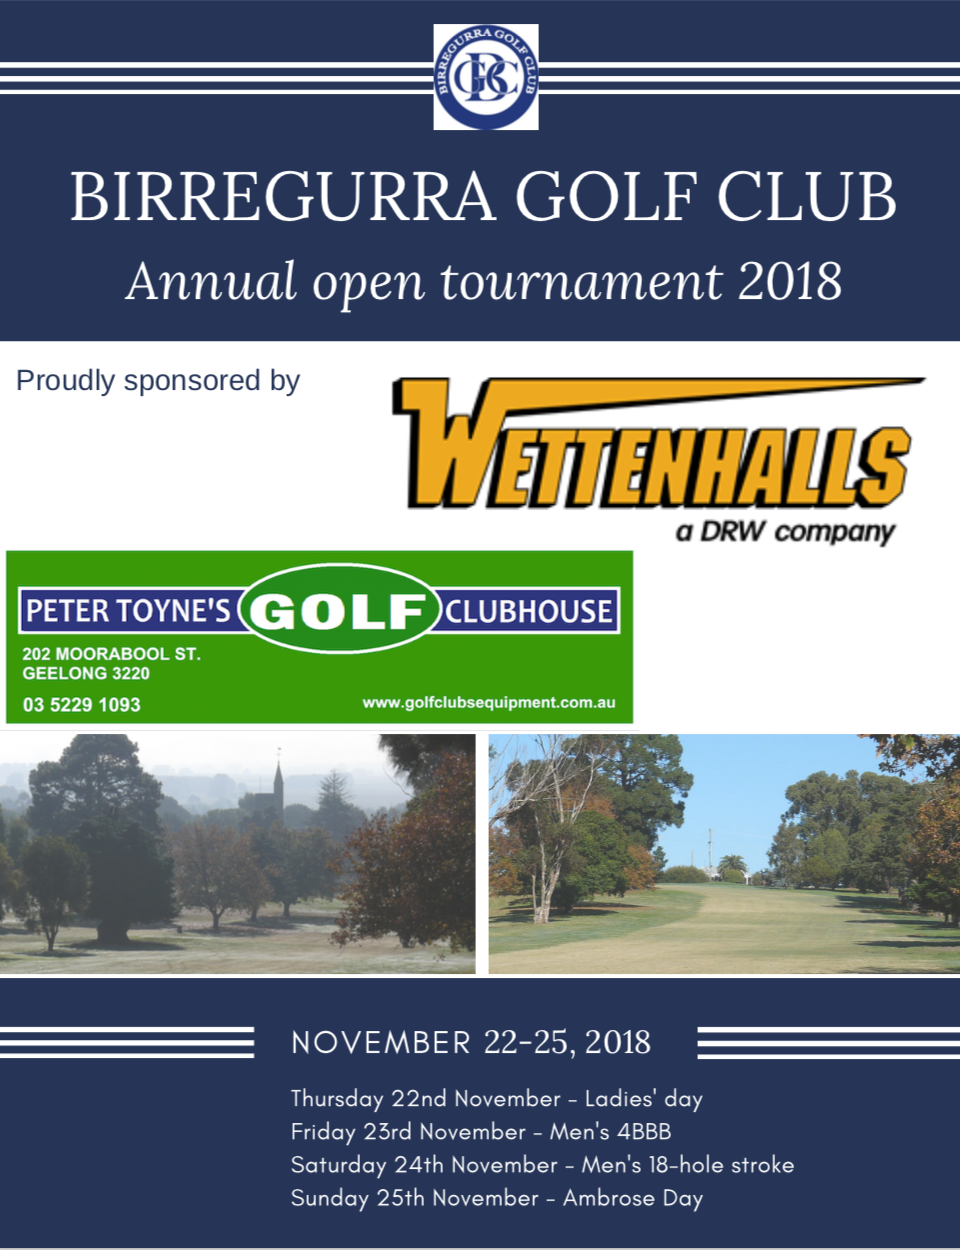 Birregurra Golf Club 2018 tournament